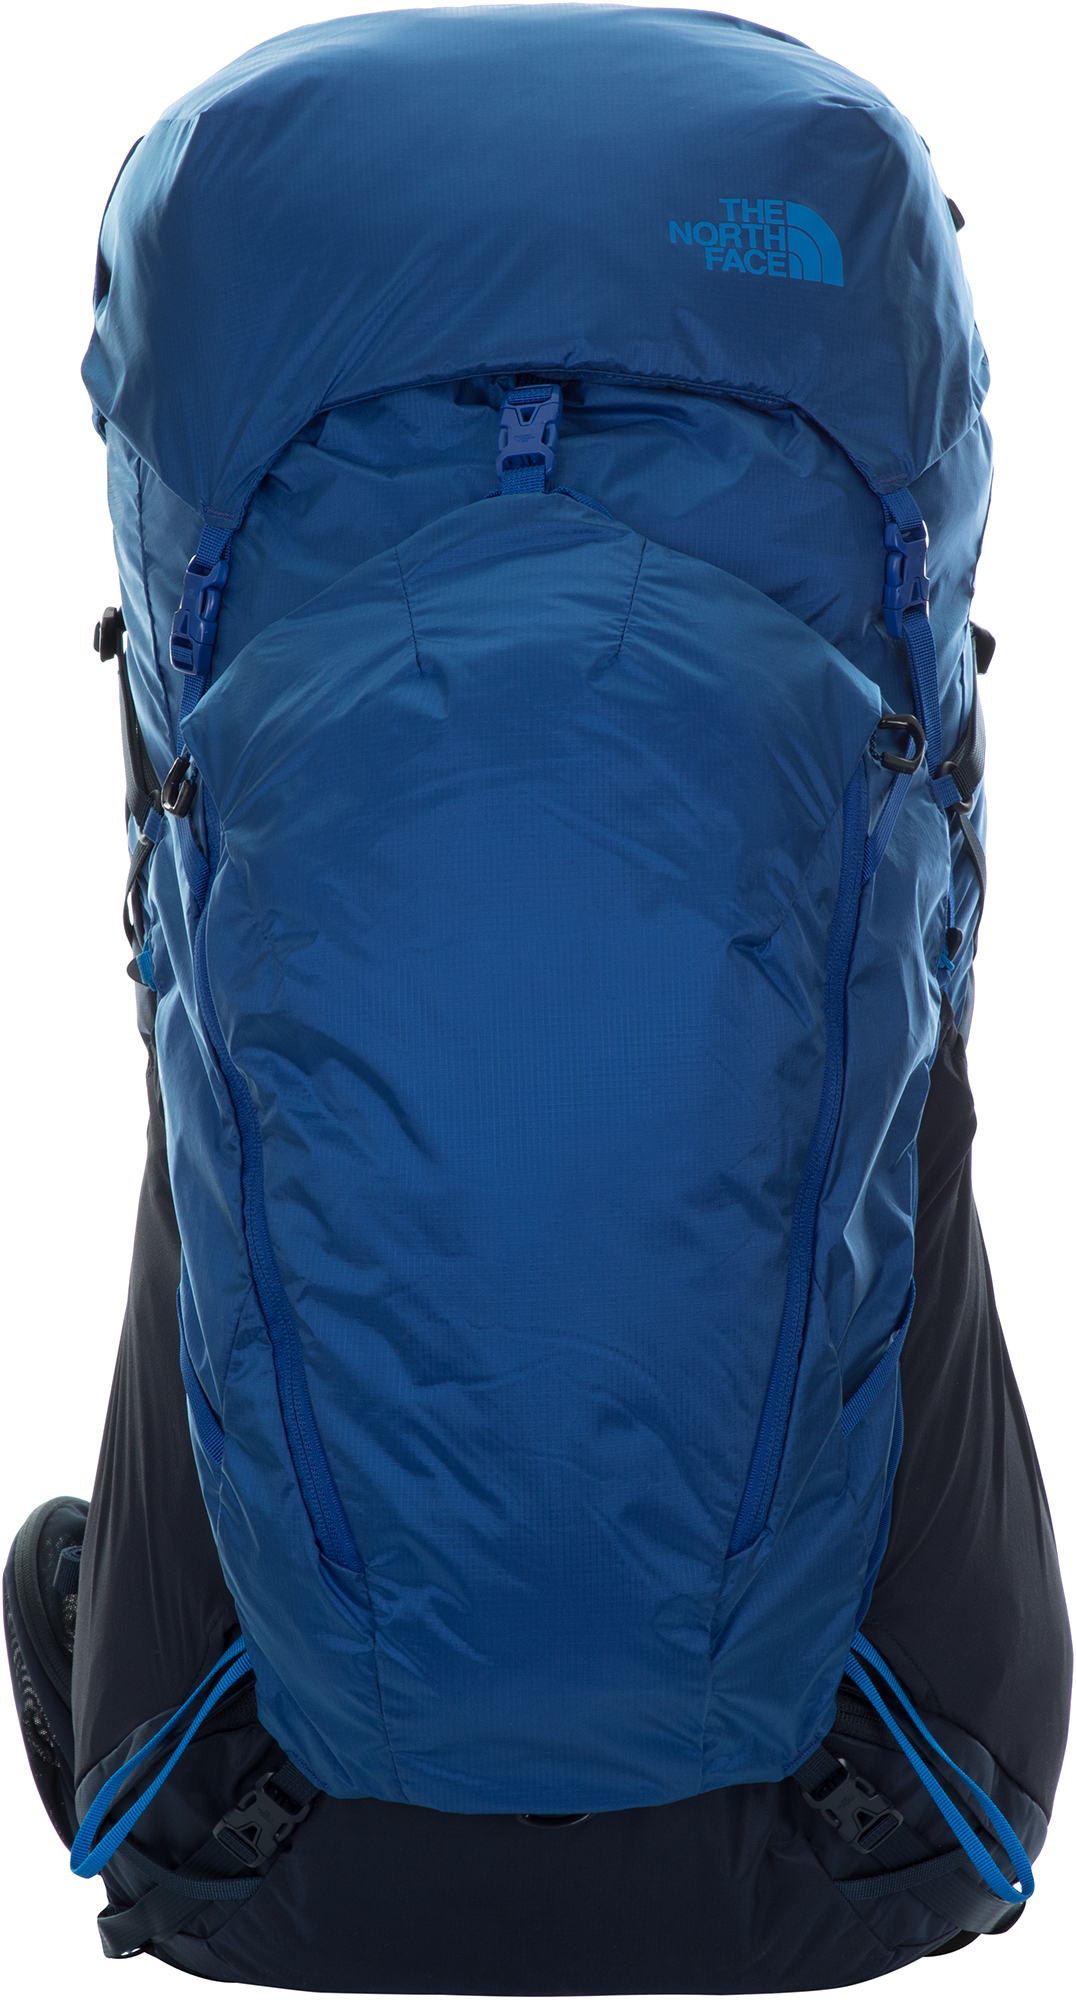 The North Face The North Face Banchee 50